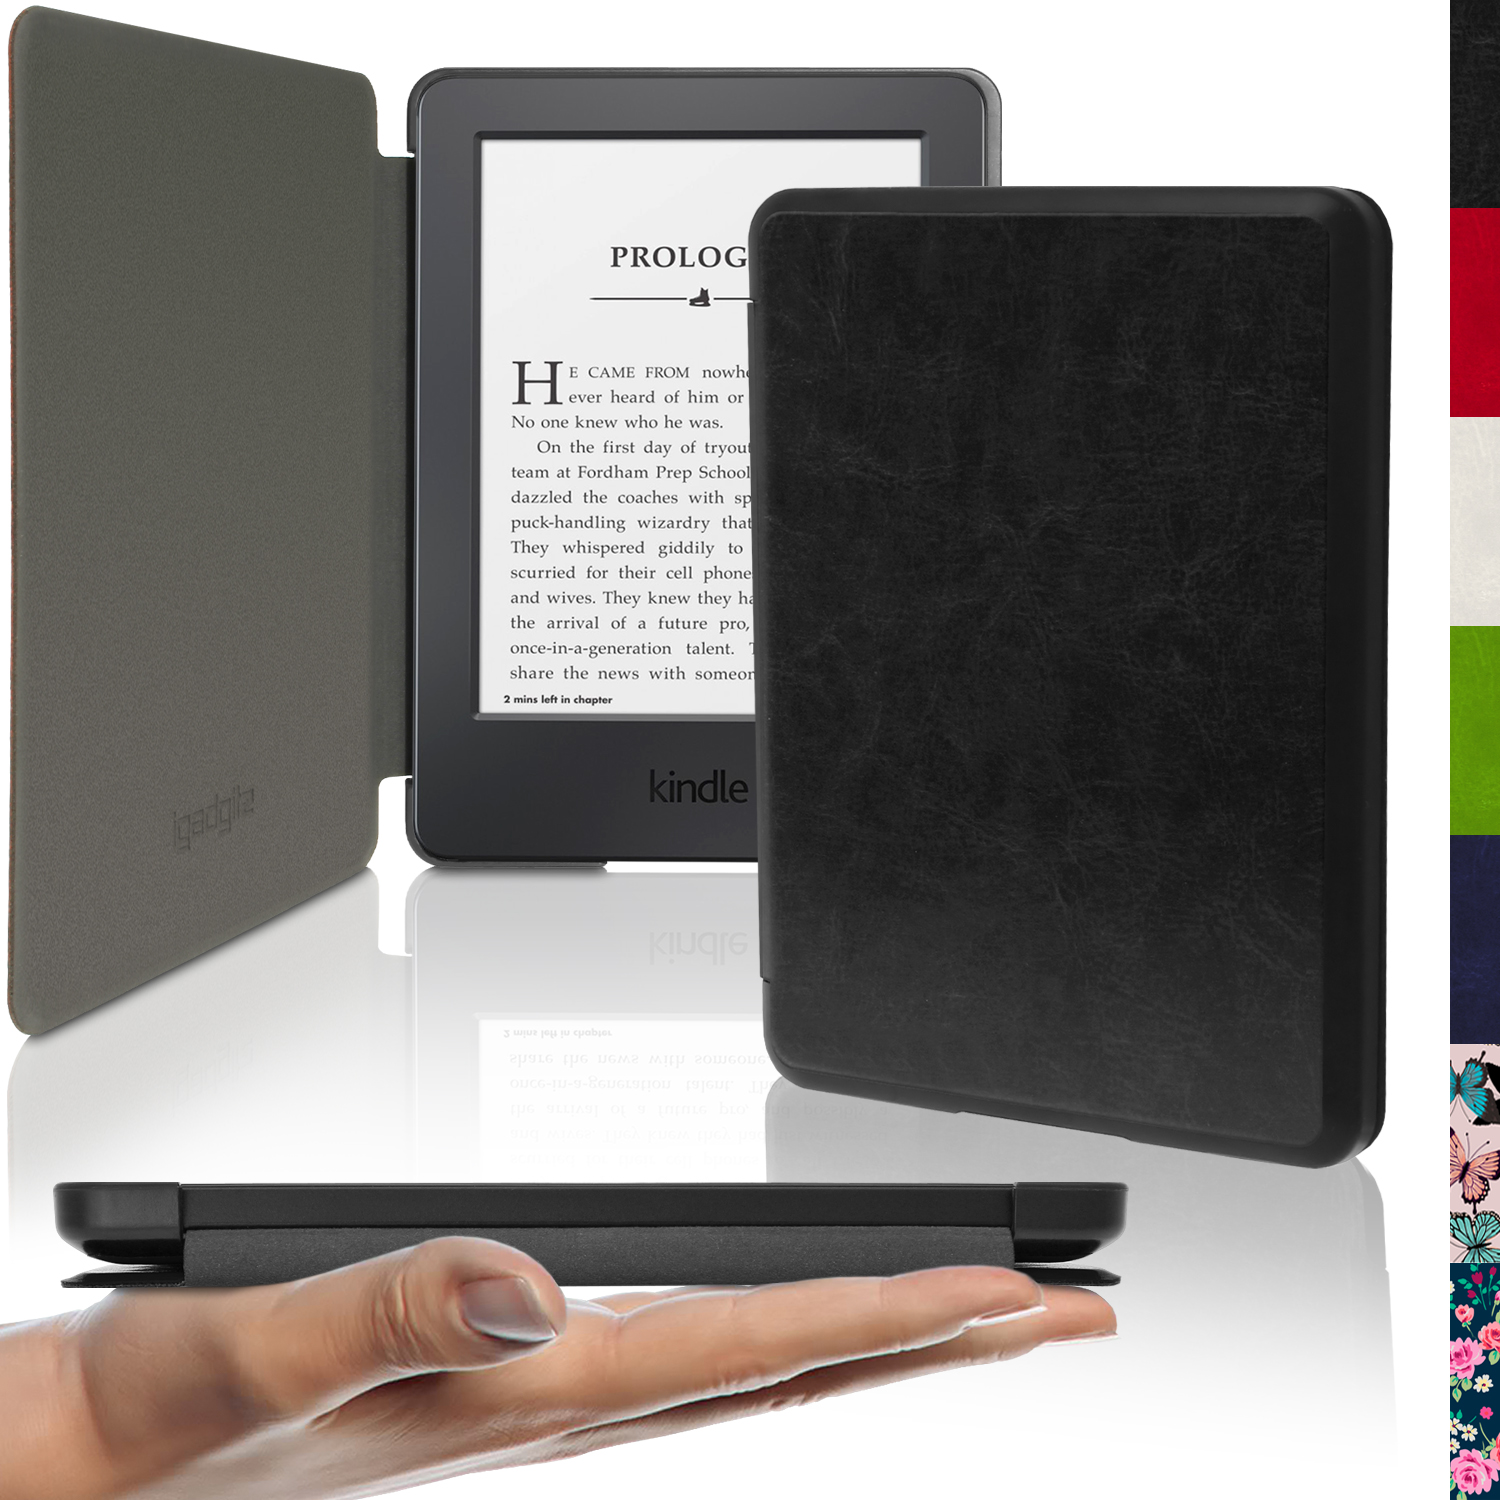 iGadgitz Slim PU Leather Shell Case Cover for Amazon Kindle 2014 Touchscreen 7th Gen with Sleep/Wake & Magnetic Closure